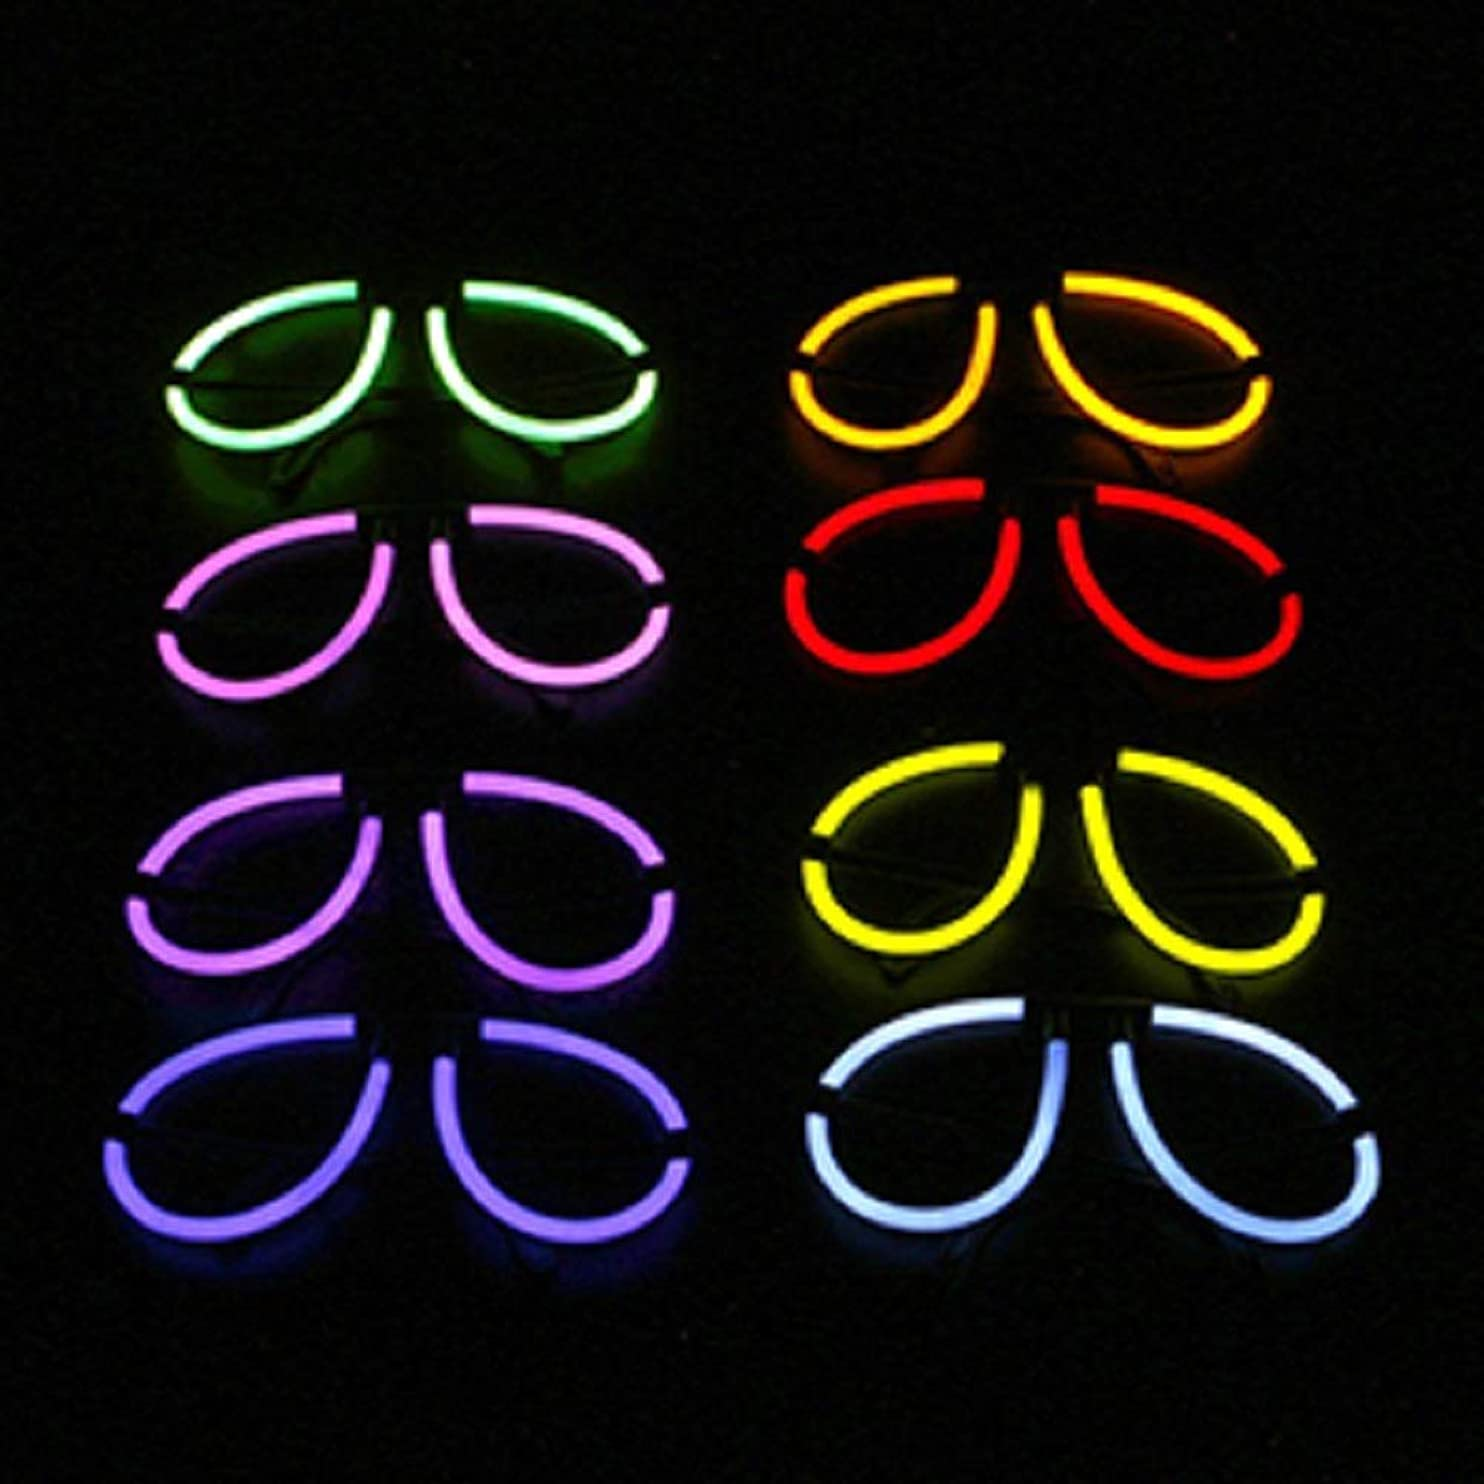 Lumistick Aviator Glow Eyeglasses | Light Up Glow Eyeglasses Eye-catching Party Wear | Perfect for Festivals Raves Discos & Partys (50, Assorted) tvpghtftopy80